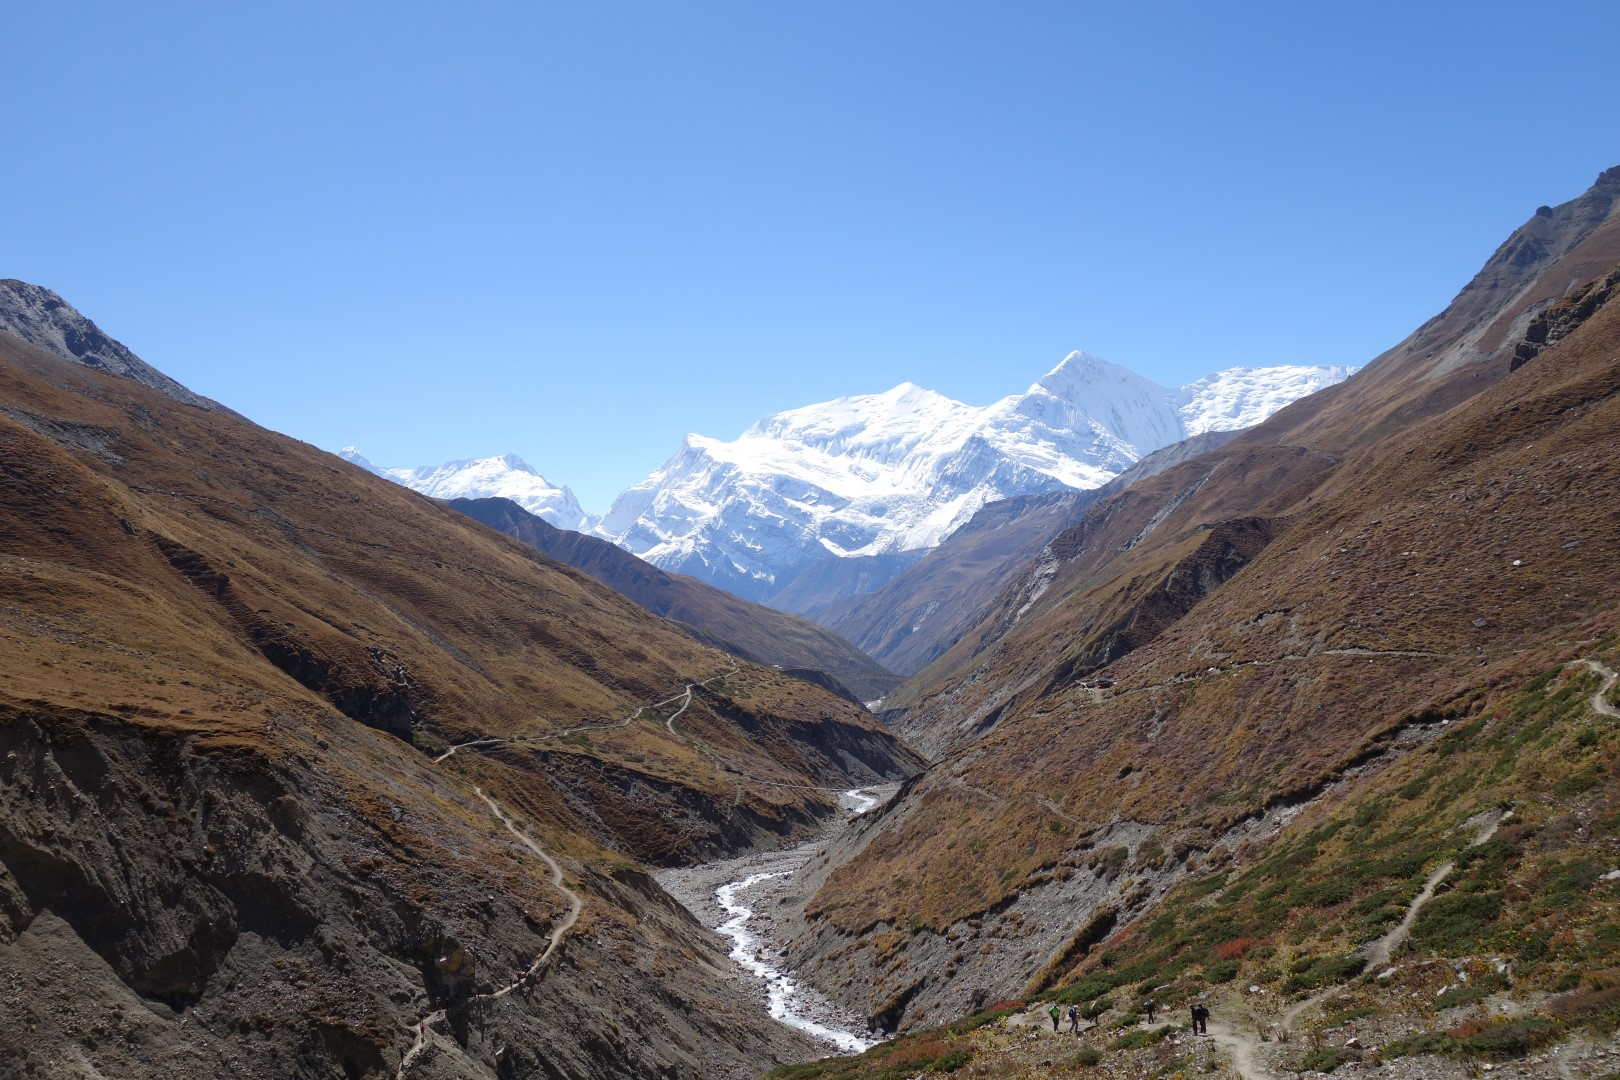 Annapurna circuit just keeps giving